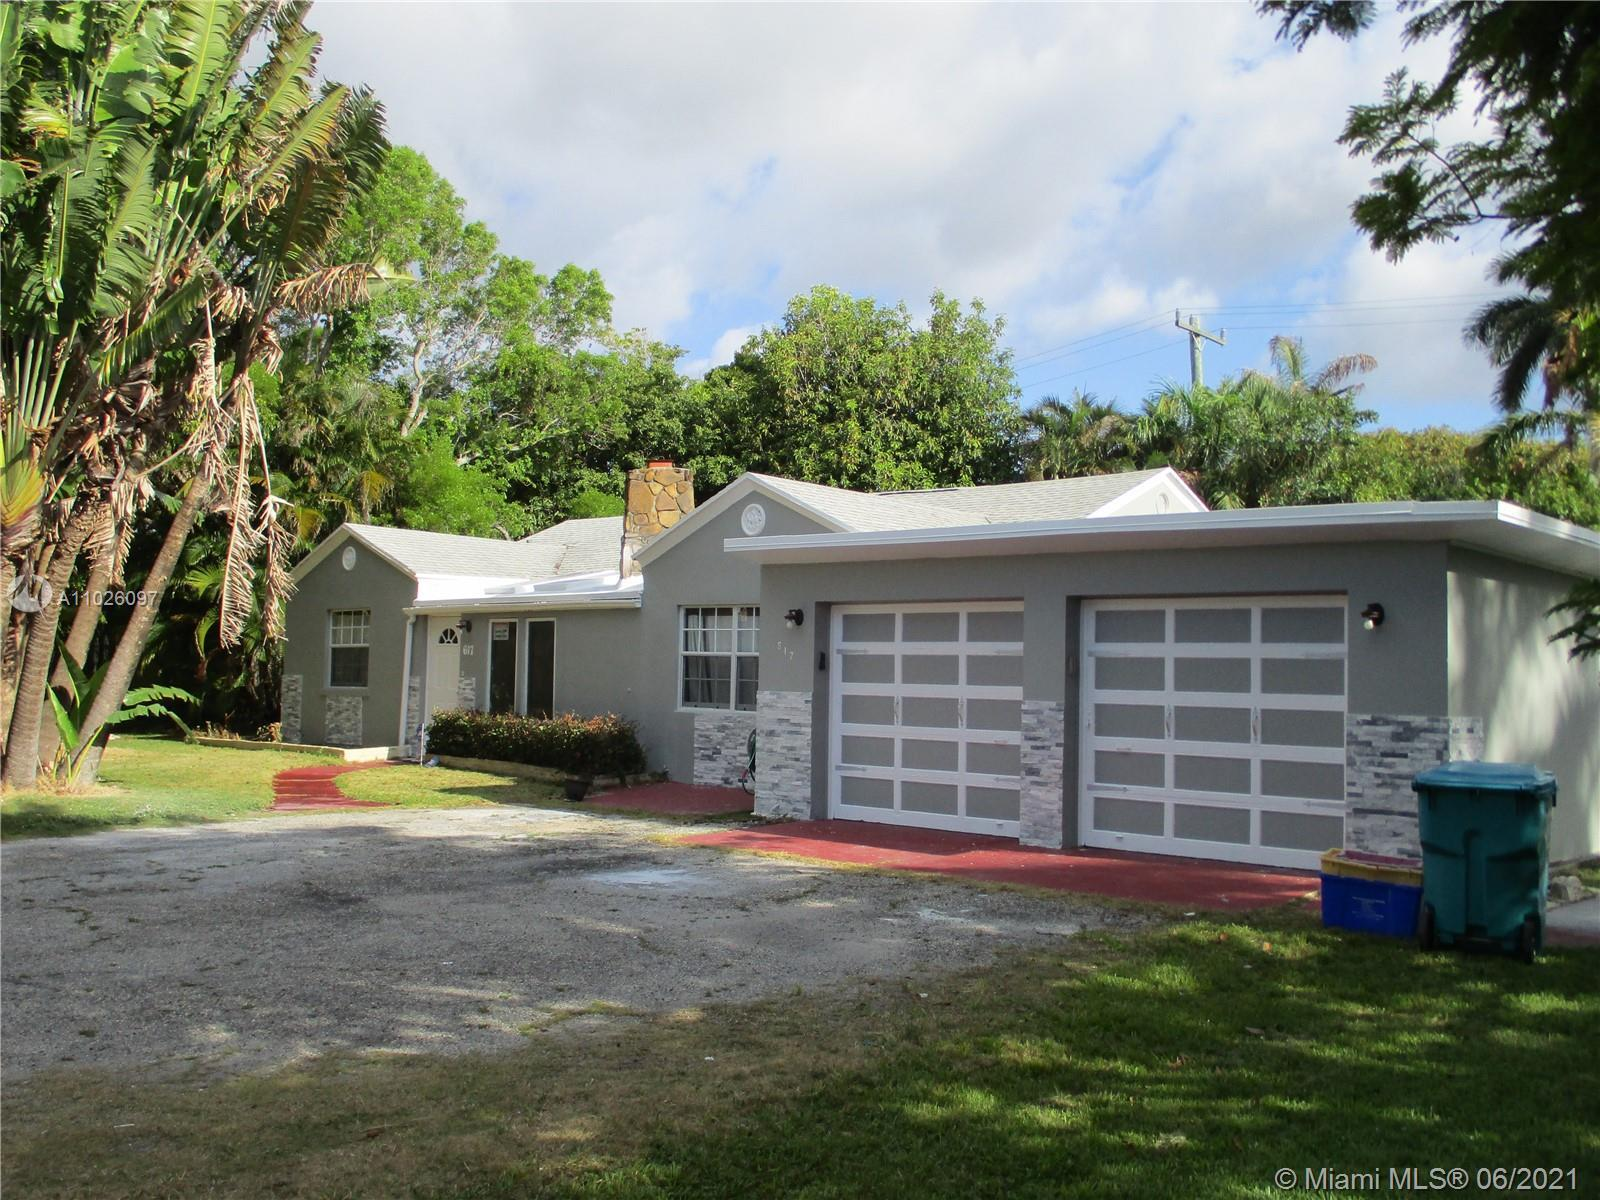 dream home four doors from intracoastal on rare double lot .